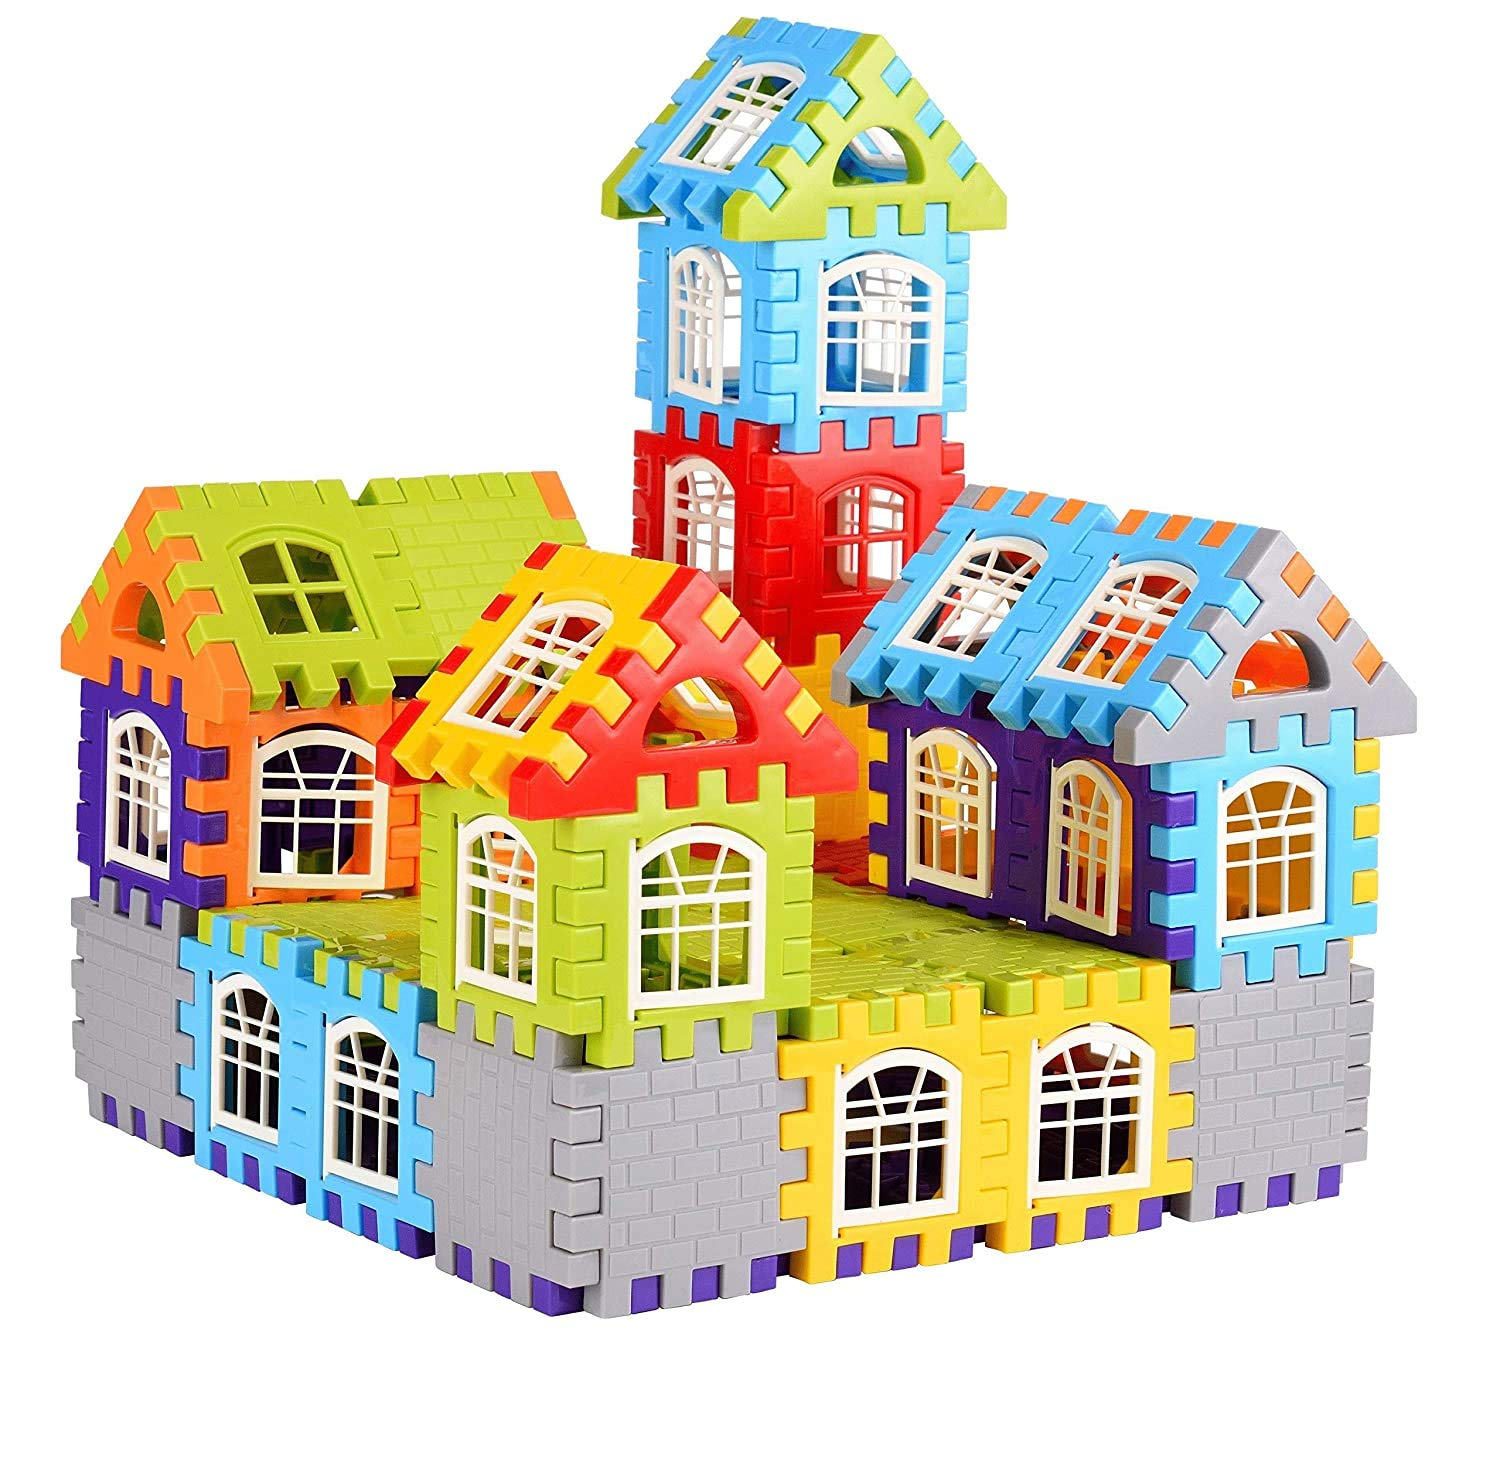 Buy Blocks House Multi Color Building Blocks with Smooth Rounded Edges